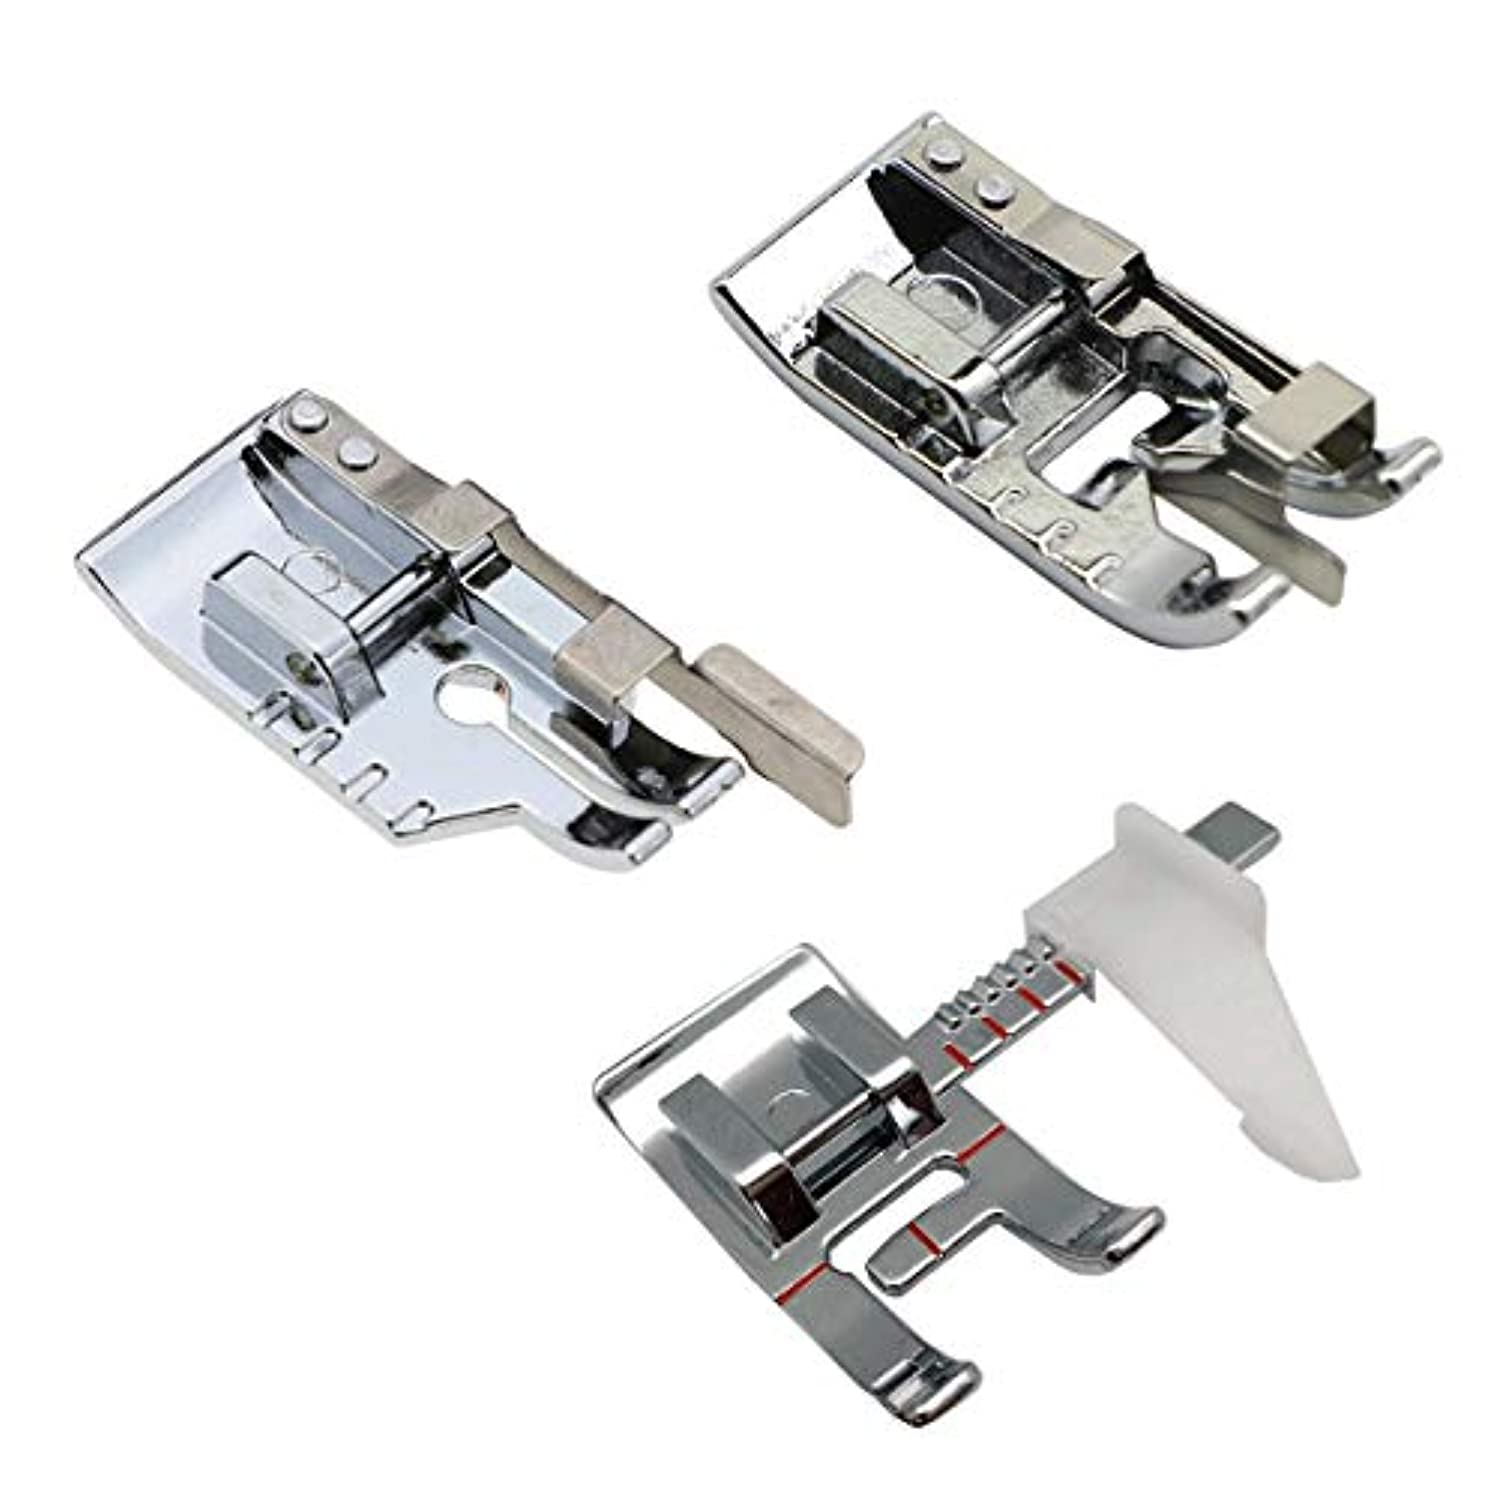 3pcs Sewing Machine Presser Foot Set - 1/4 Inch Quilting Foot/Adjustable Guide Presser Foot/Edge Joining Stitch in The Ditch Sewing Presser Foot for Most Low Shank Singer, Brother Sewing Machines